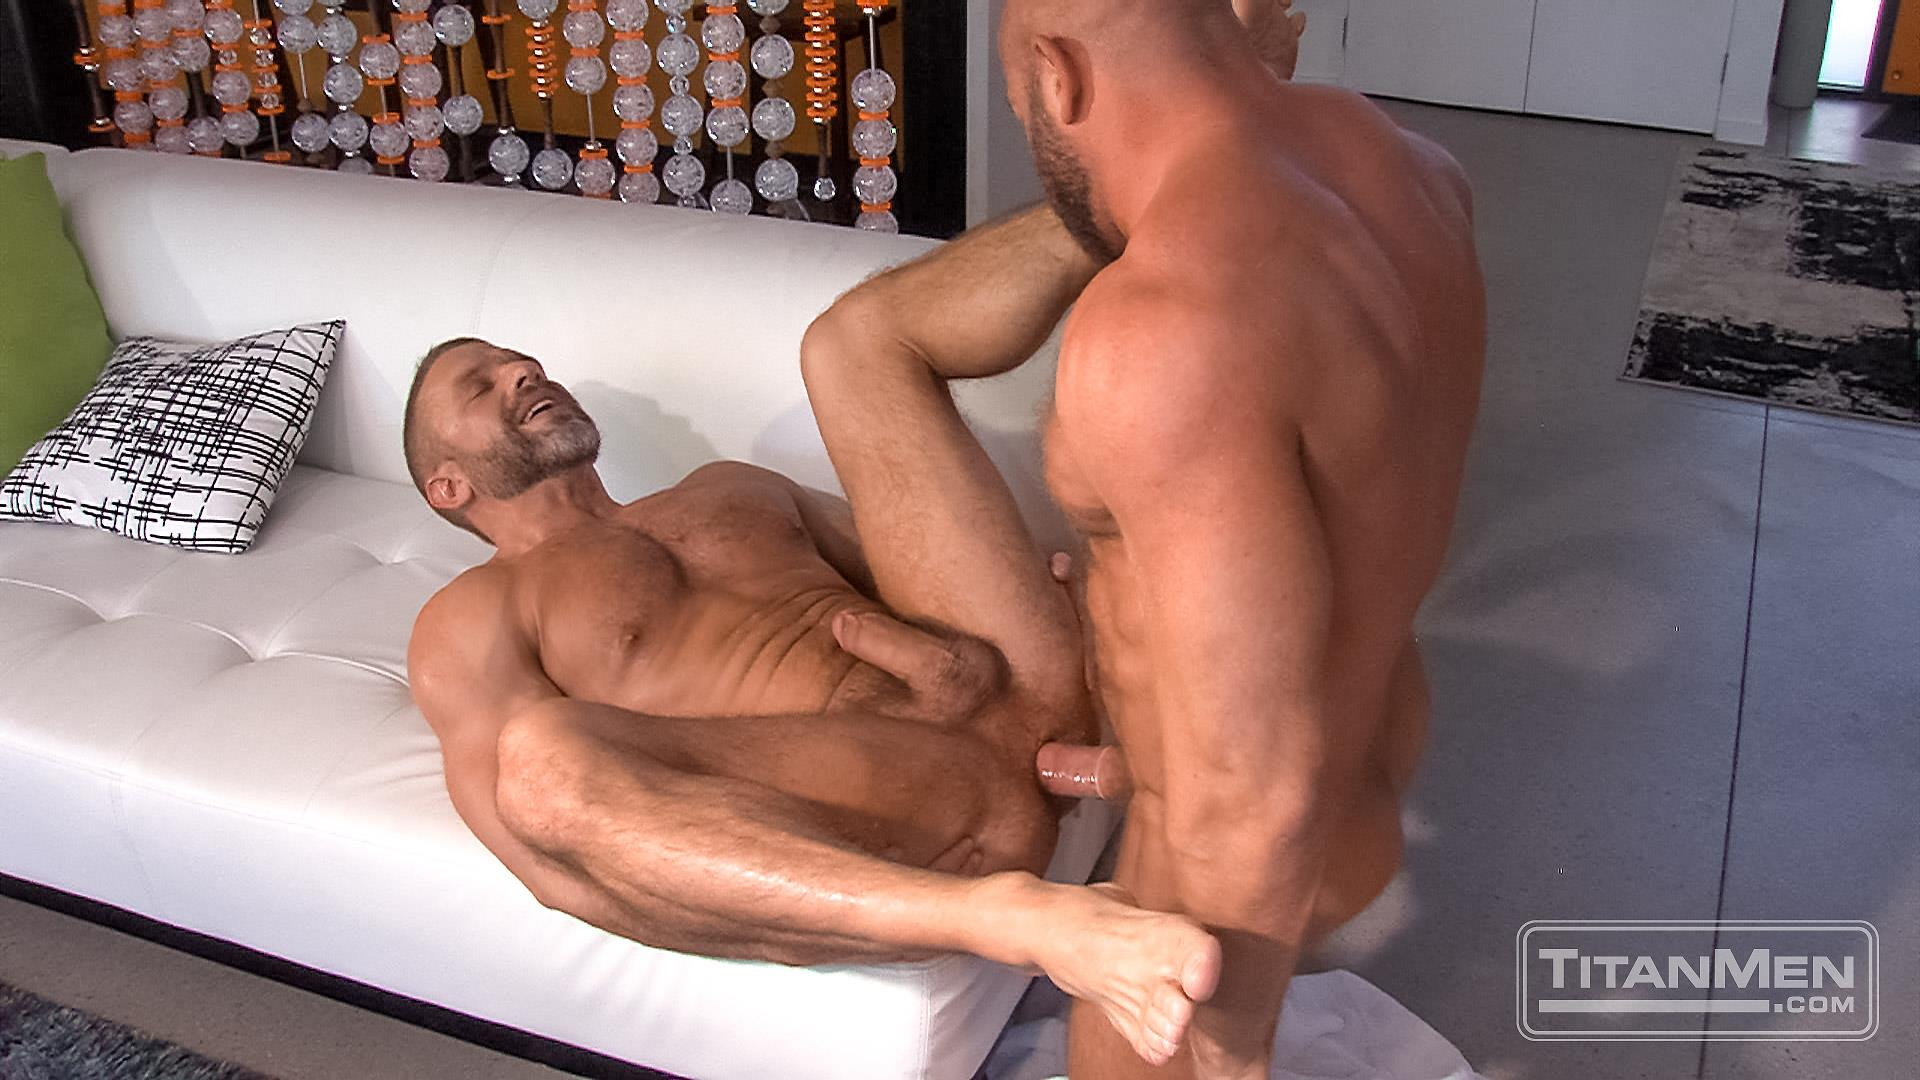 Titanmen-Titan-Hunter-Marx-and-Dirk-Caber-Hairy-Muscle-Daddy-Fuck-Amateur-Gay-Porn-41 Dirk Carber Gets Fucked Hard By Another Muscle Daddy With A Thick Cock